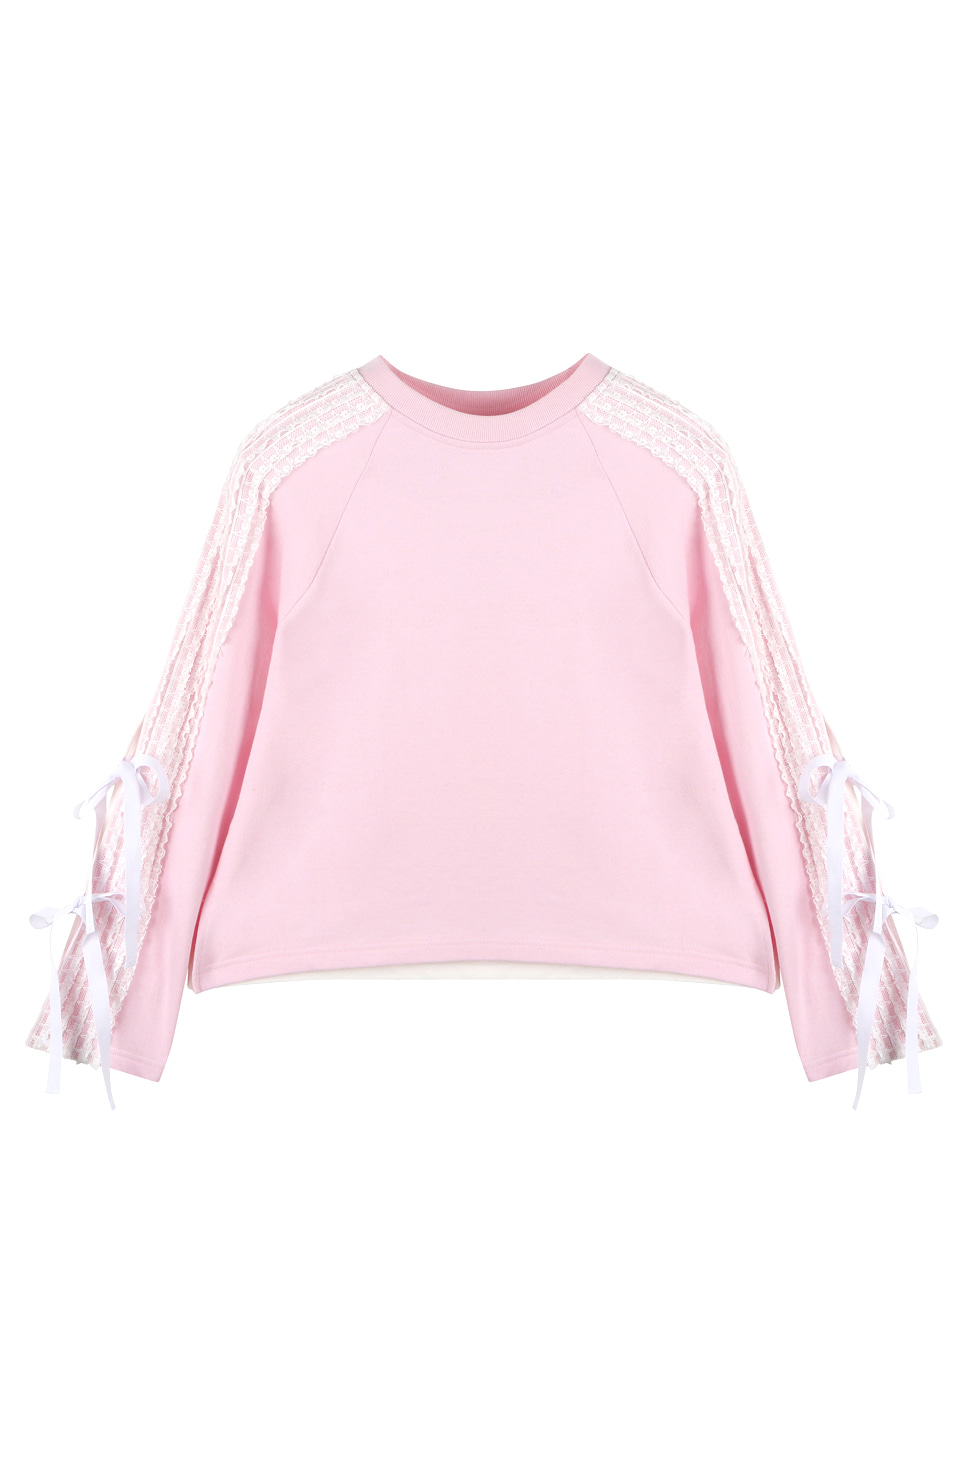 LACE JERSEY PULLOVER - PINK